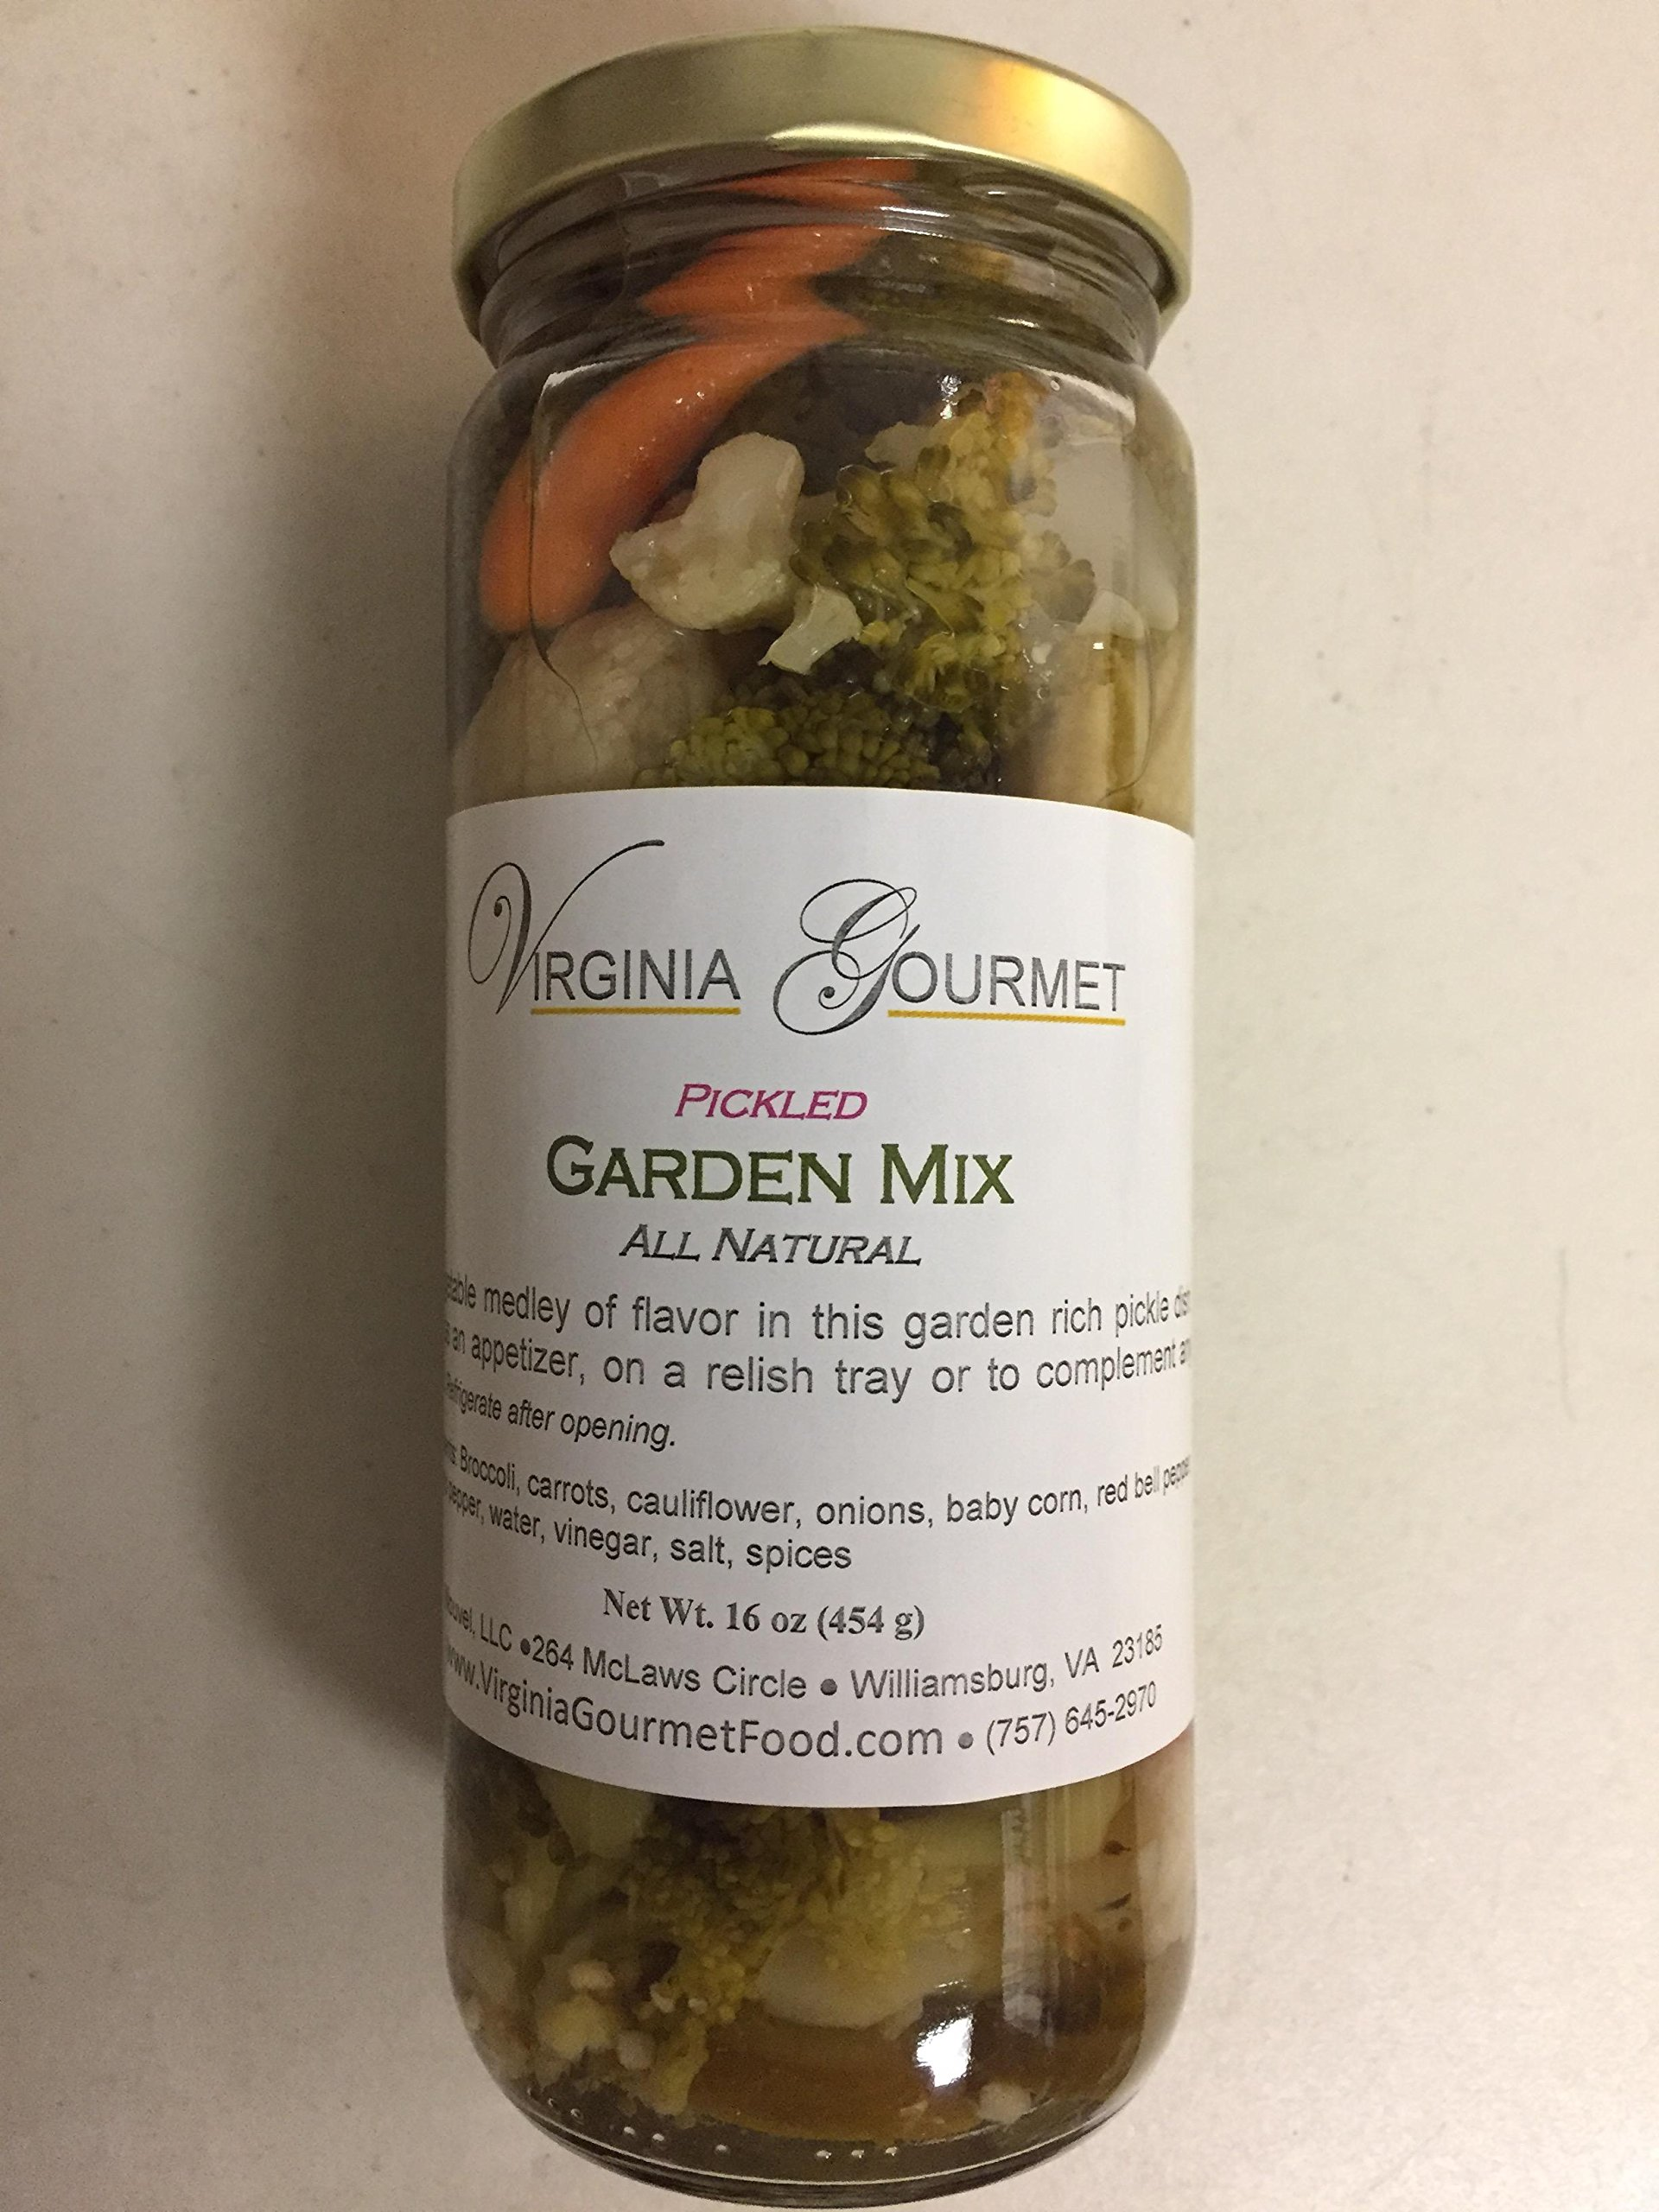 Pickled Garden Vegetable Mix - Virginia Gourmet All Natural